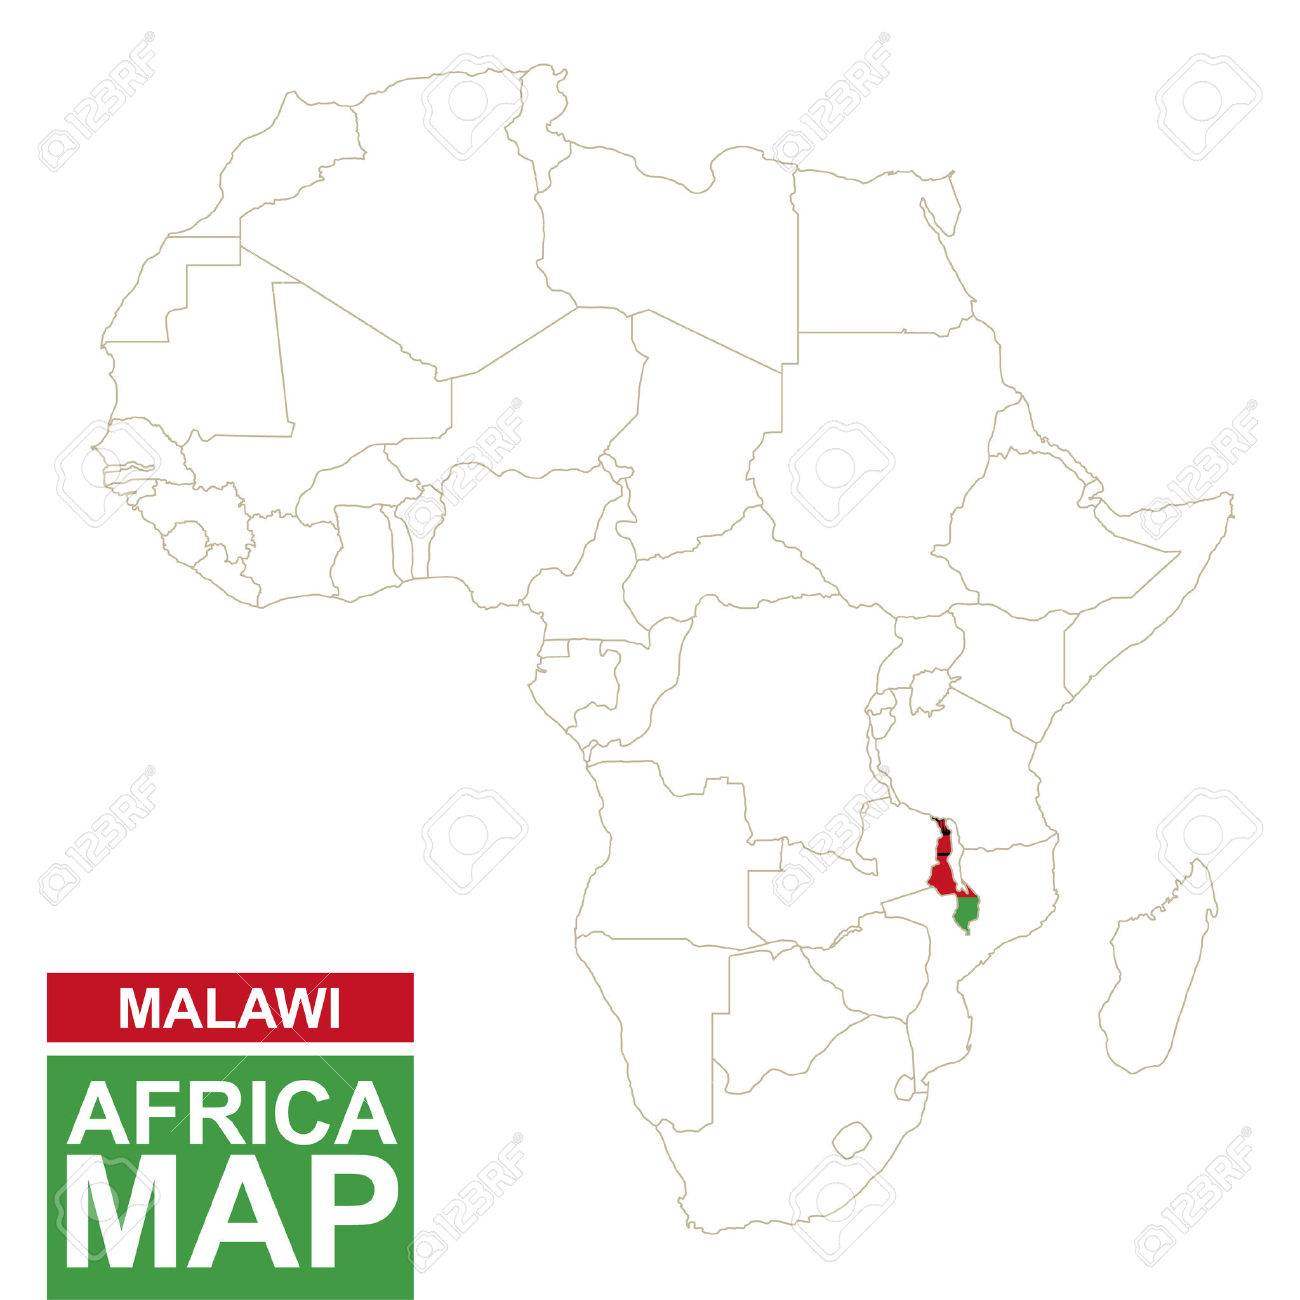 Malawi On Africa Map.Africa Contoured Map With Highlighted Malawi Malawi Map And